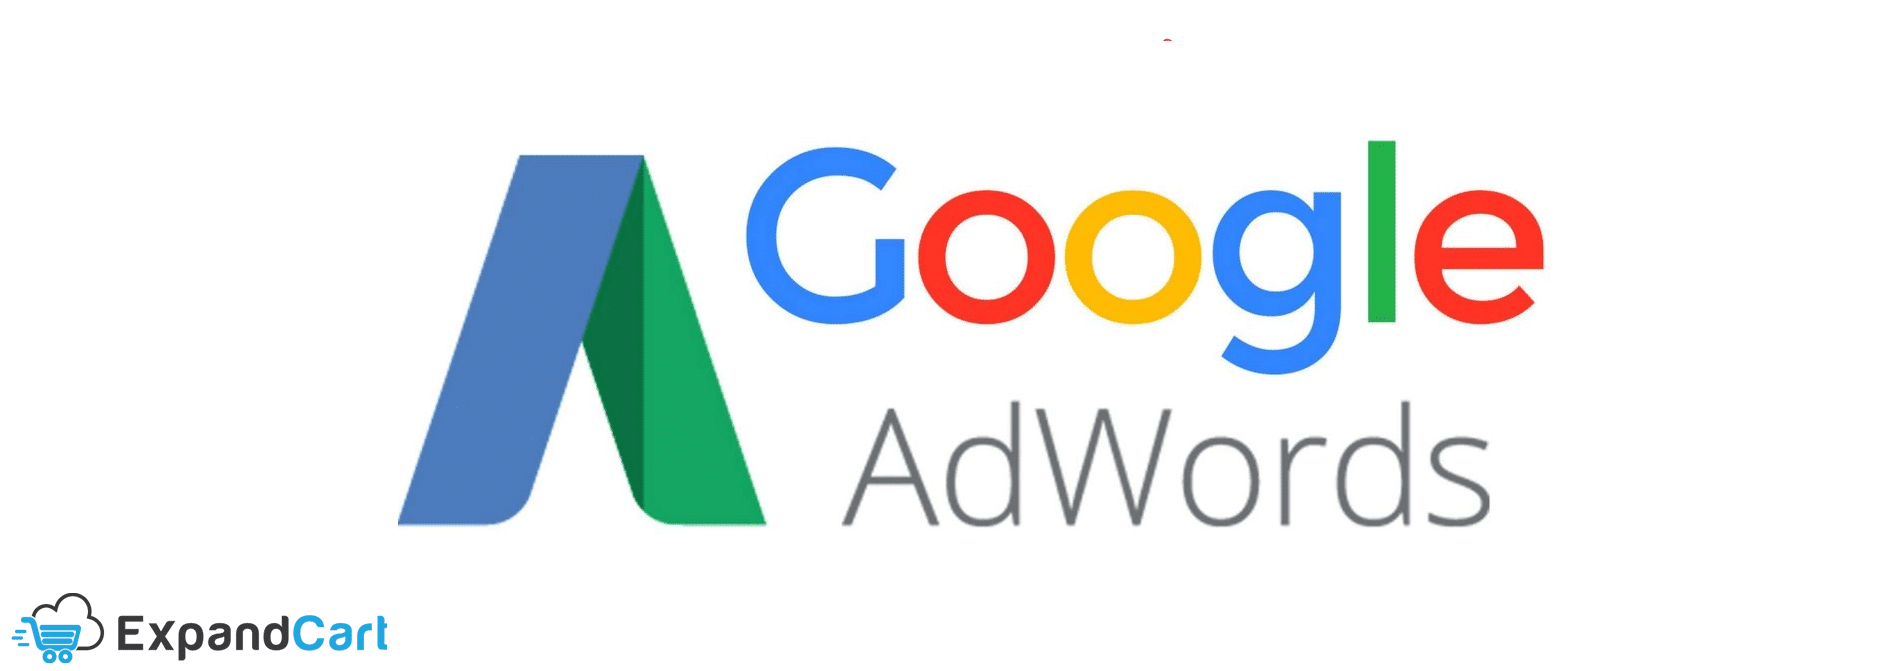 How Google specifies the arrangement of ads appearance – Google AdWords